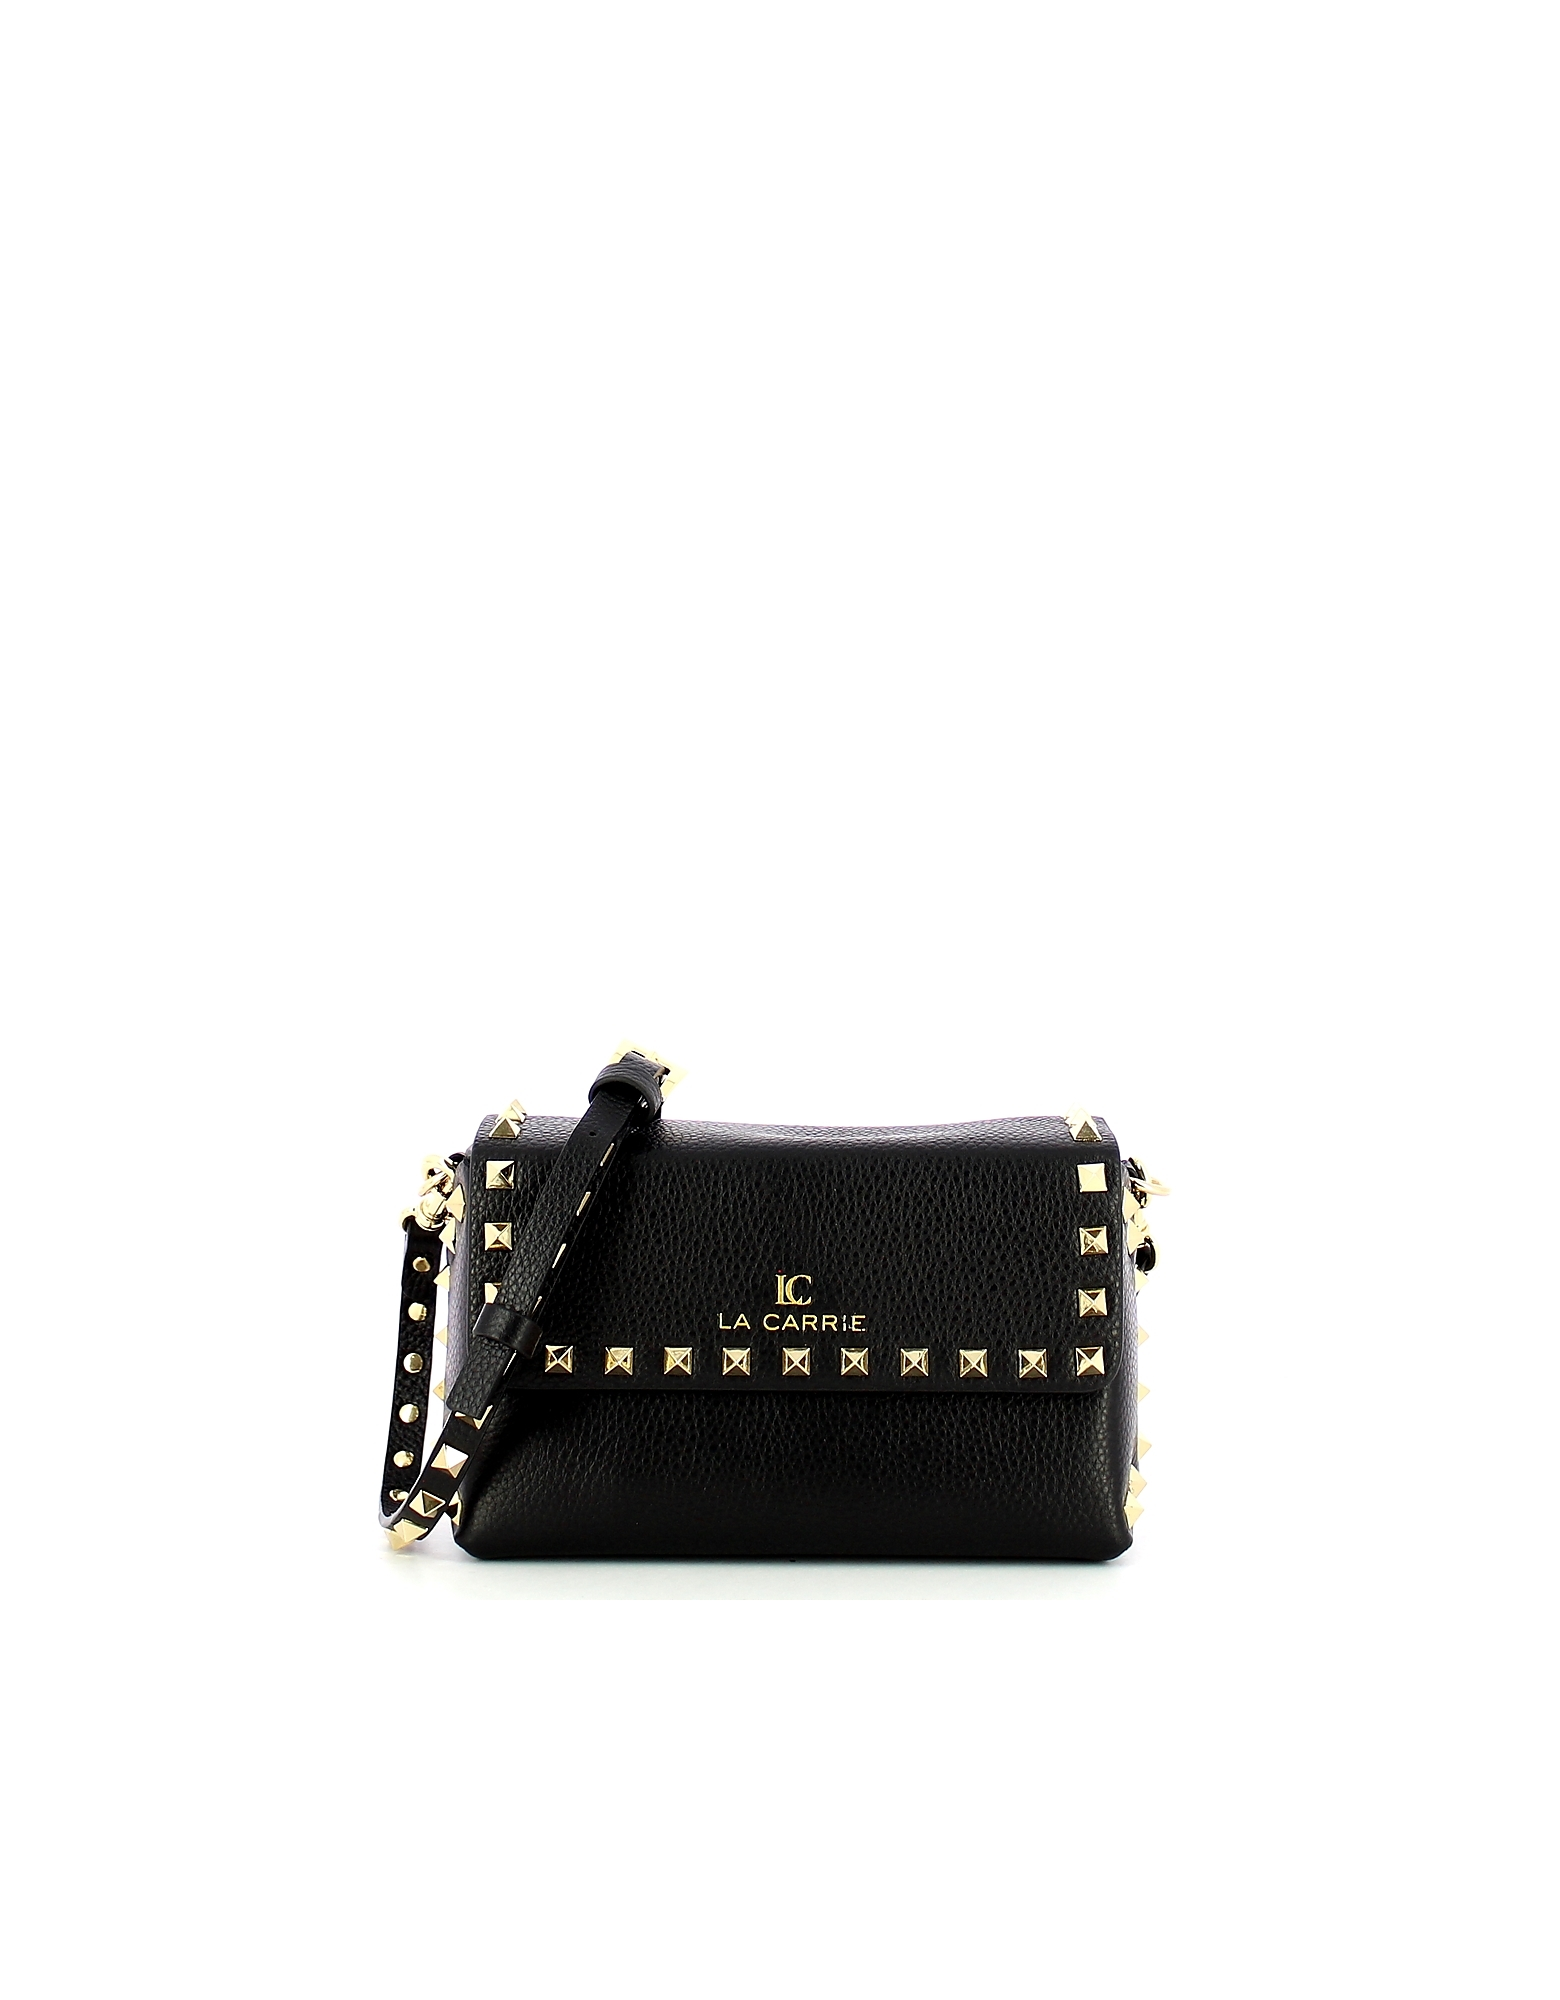 LA CARRIE Designer Handbags, Black Studded Lucy Shoulder Bag